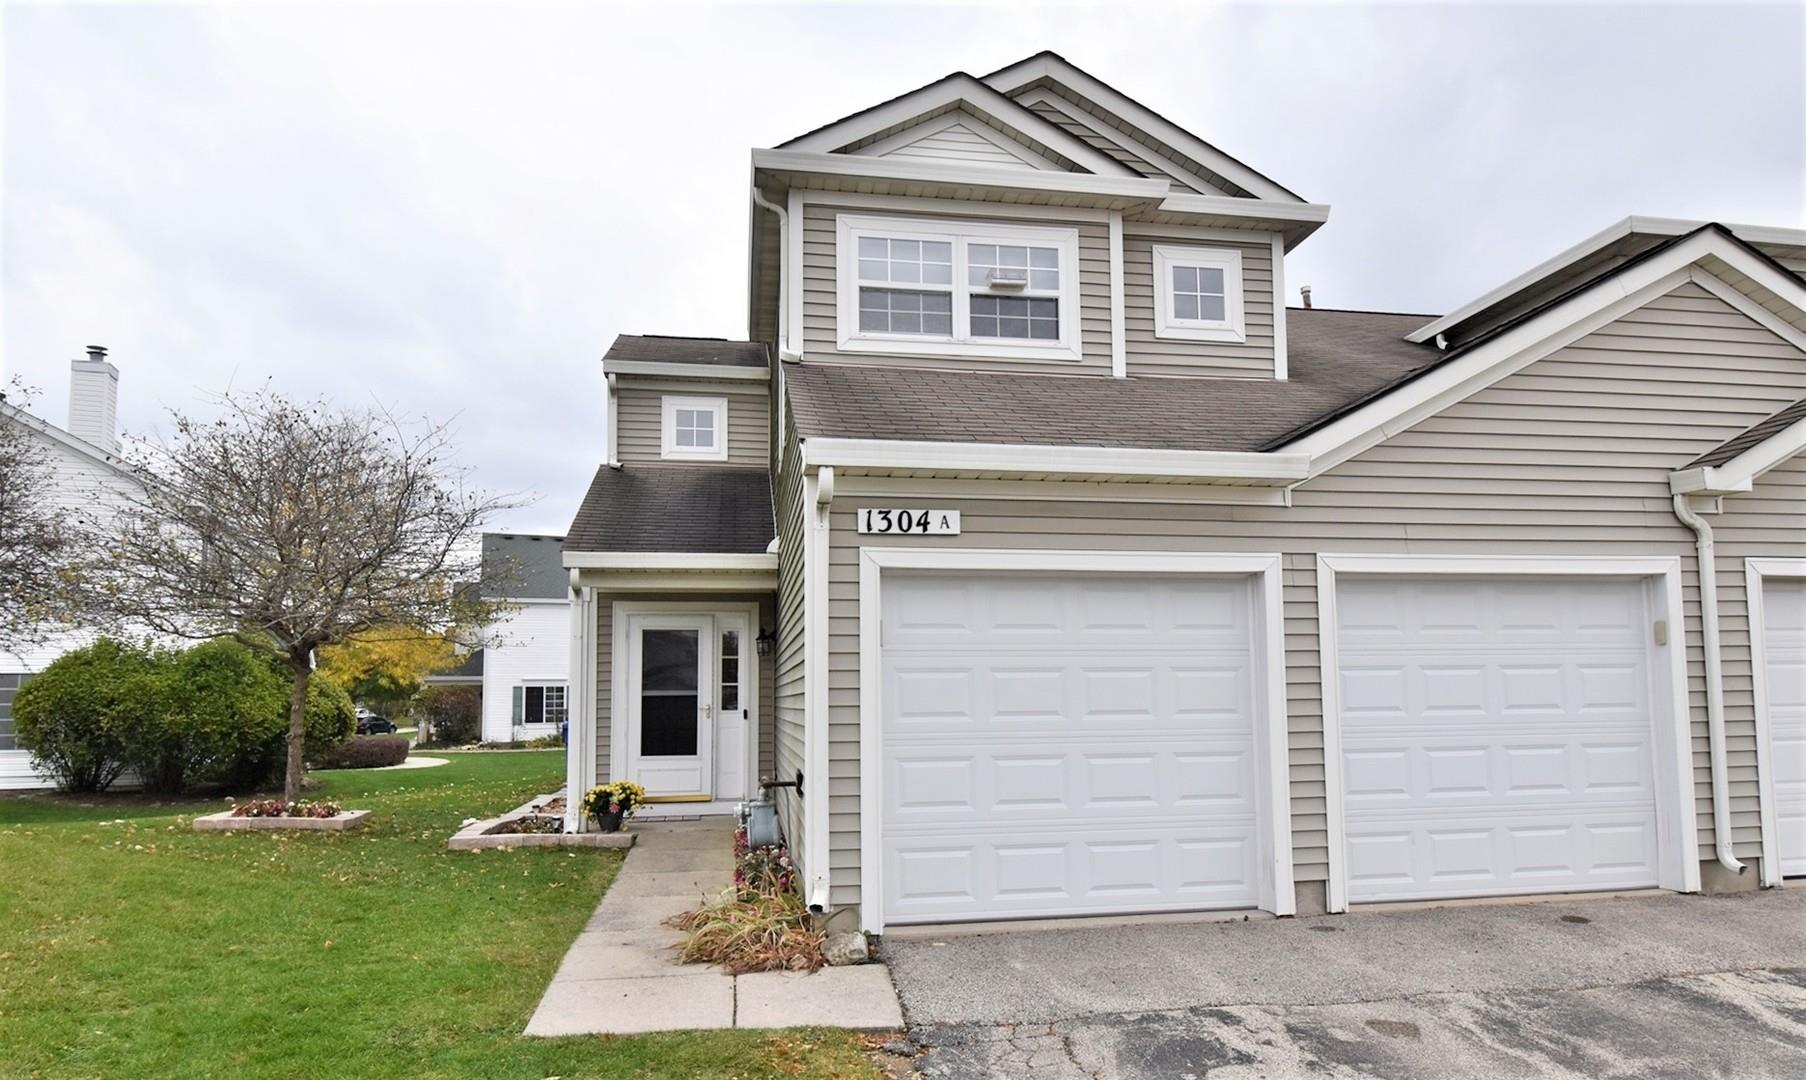 1304 Jenna Drive #A, South Elgin, IL 60177 - #: 10911963